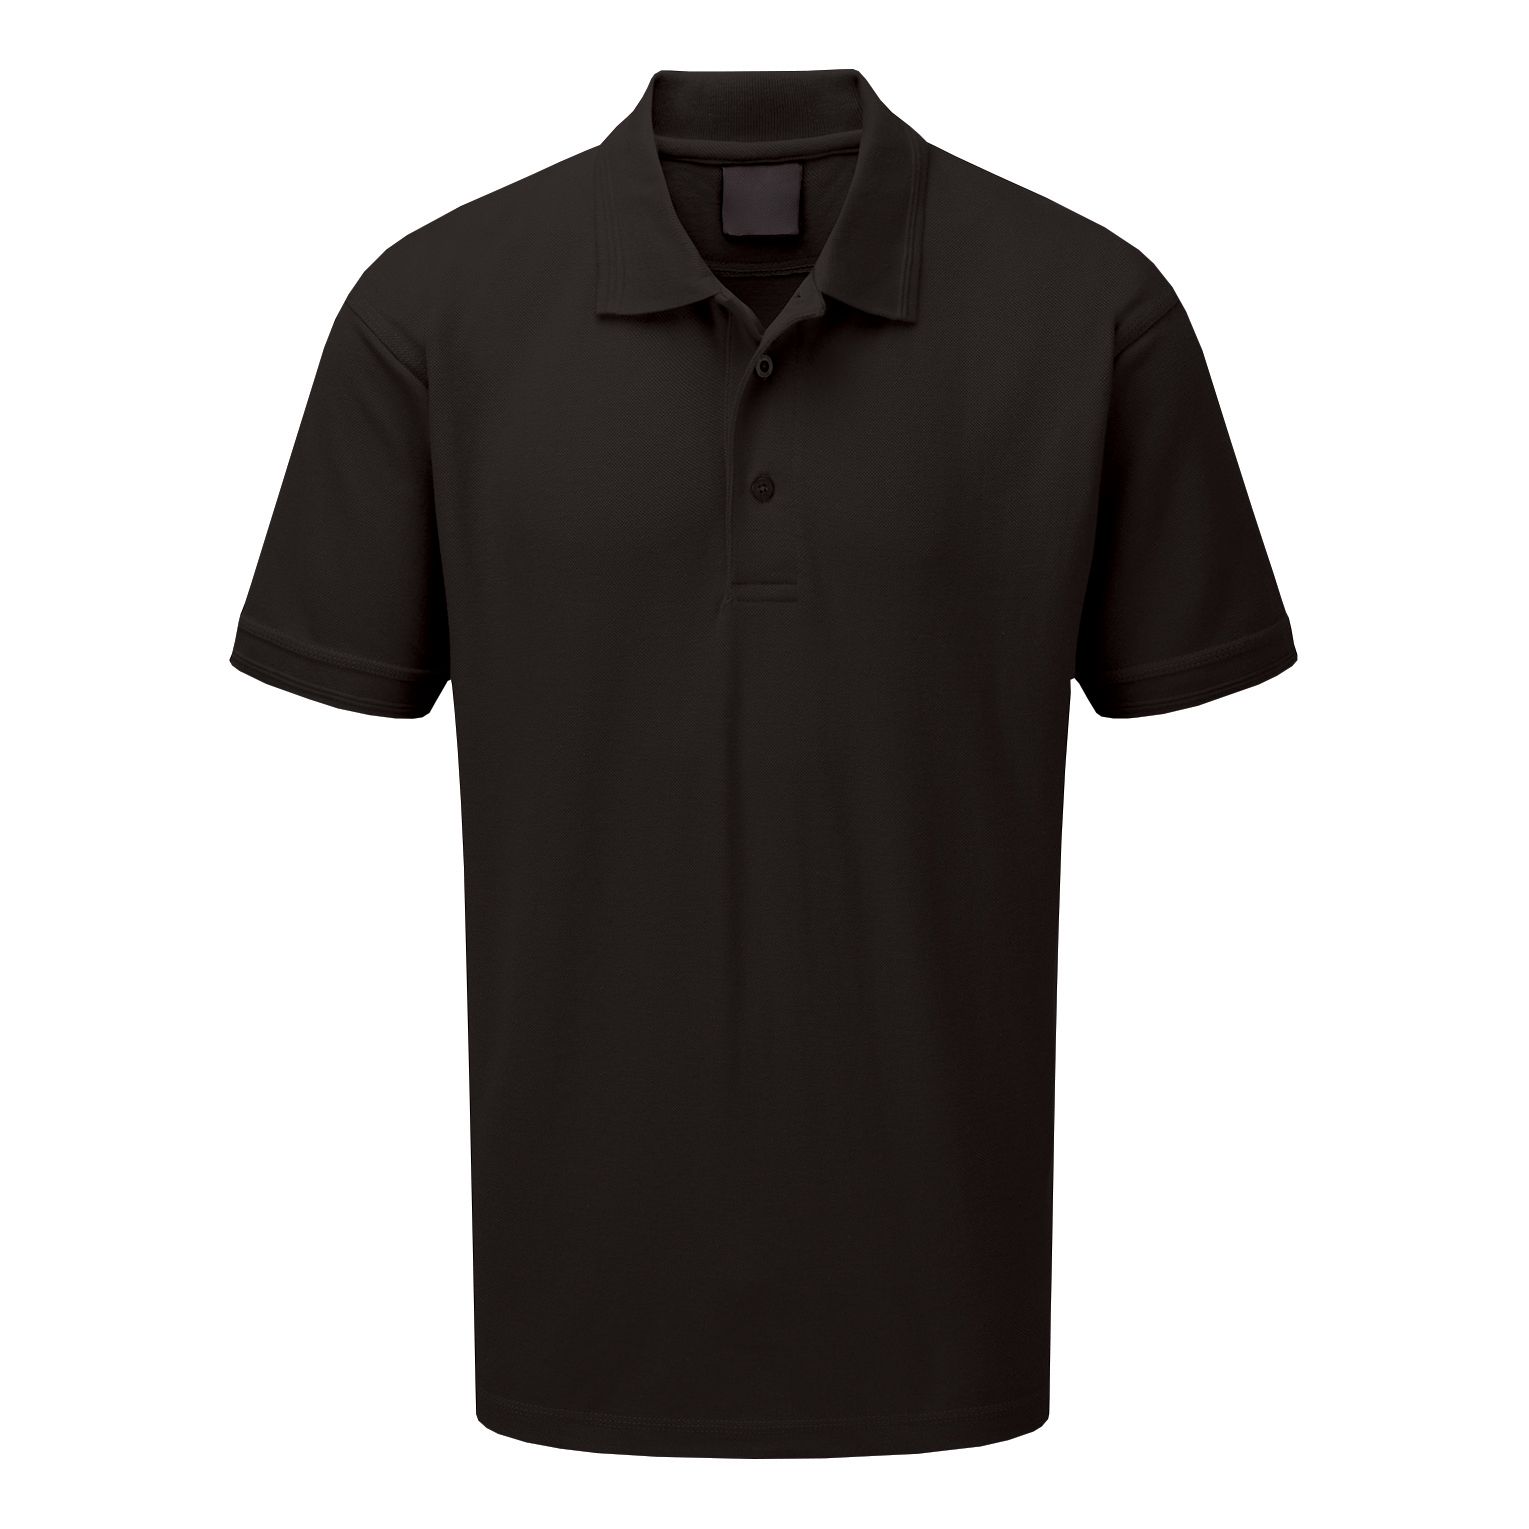 Click Workwear Polo Shirt Polycotton 200gsm 4XL Black Ref CLPKSBL4XL *1-3 Days Lead Time*